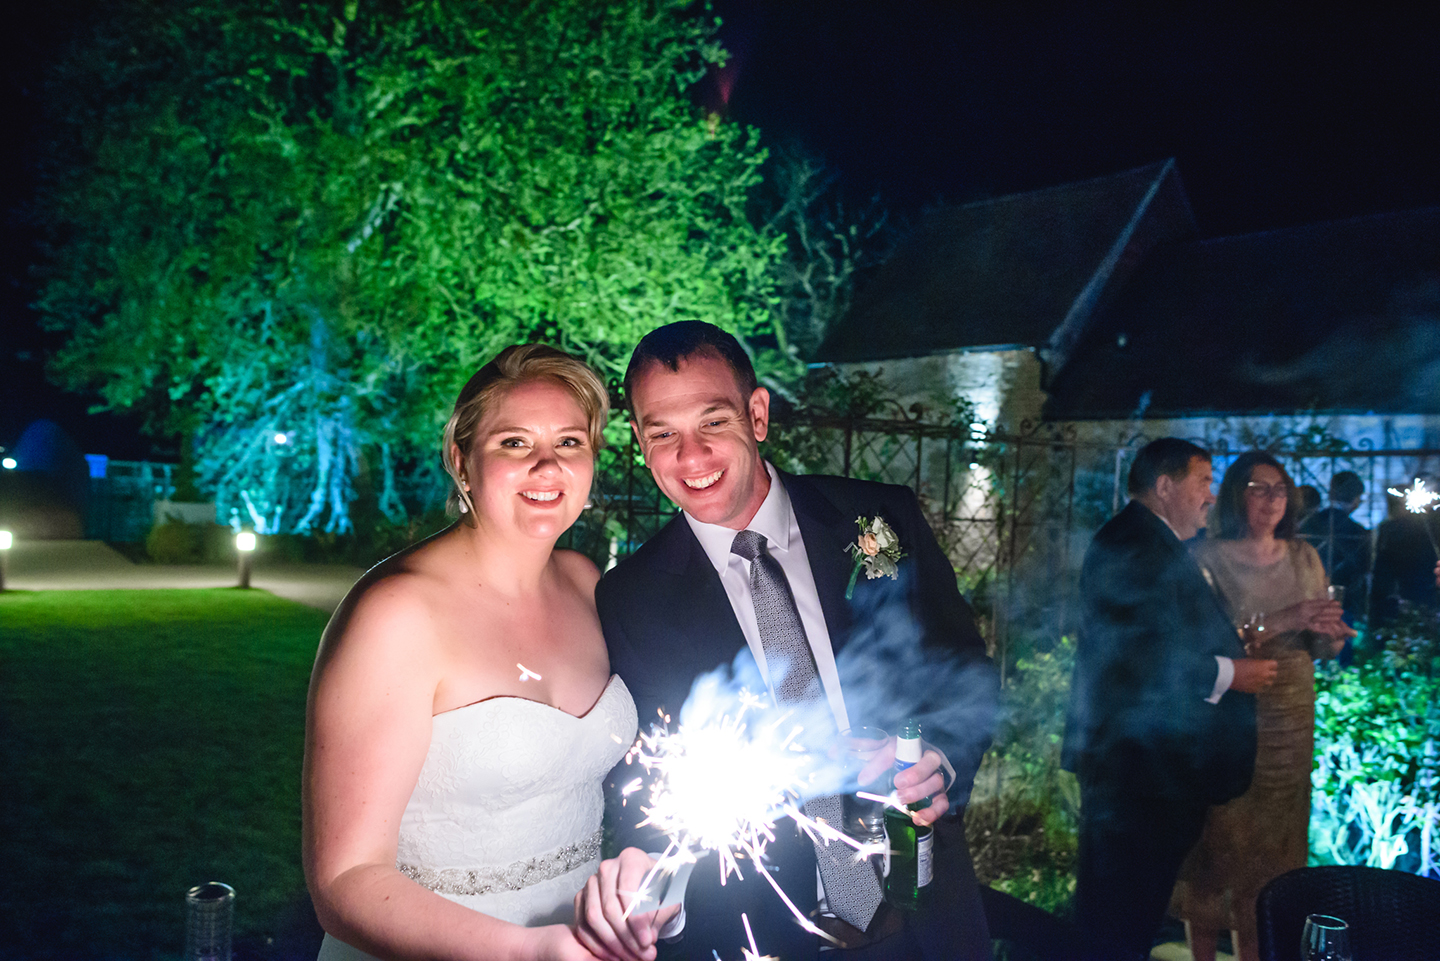 The bride and groom enjoy lighting sparklers during the evening reception at this beautiful Cambridgeshire wedding venue